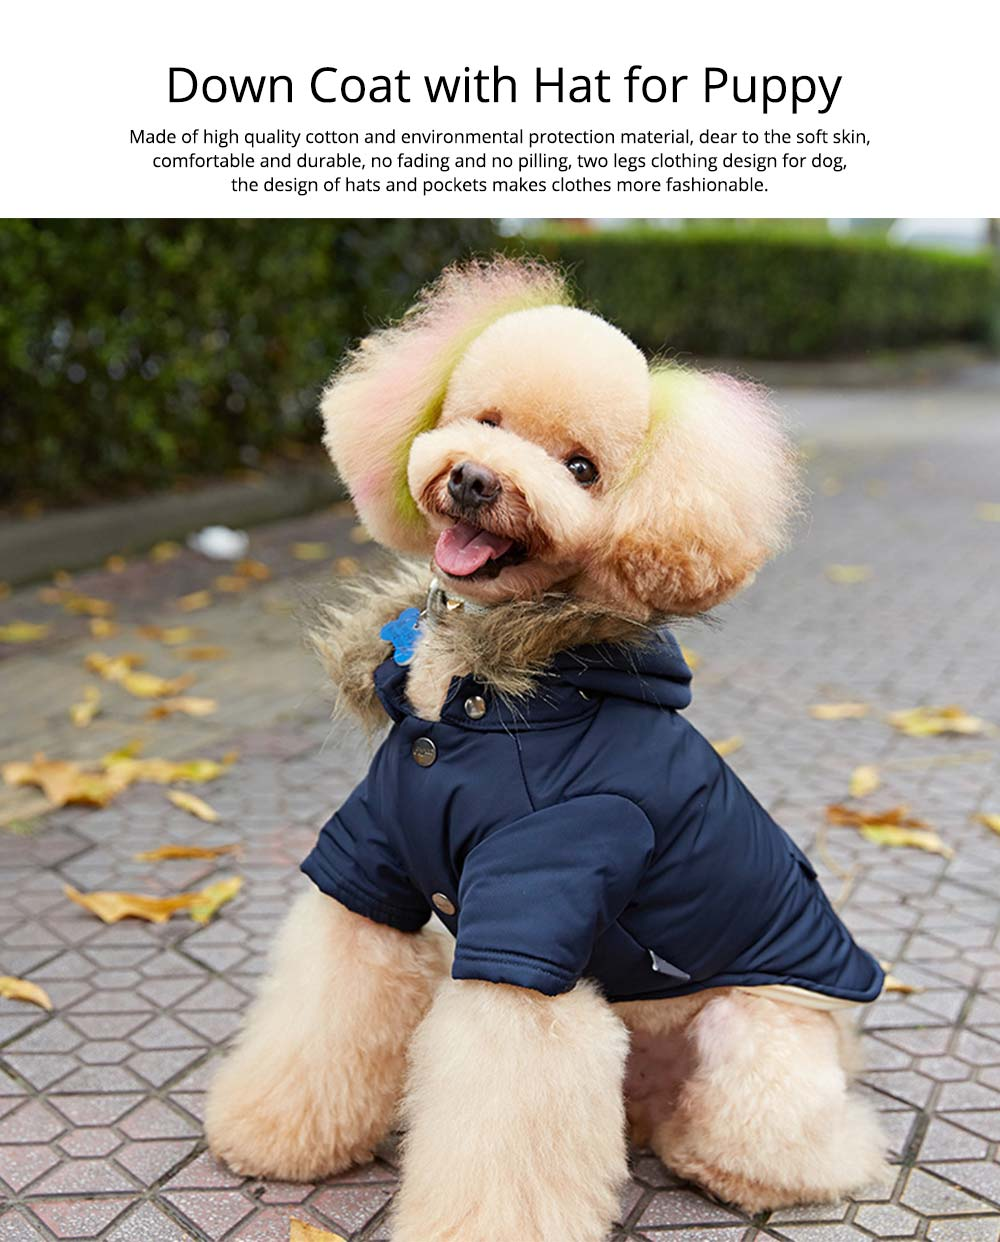 Pet Dog Clothes Two Legs Down Coat with Hat for Puppy Autumn Winter New Arrival 0